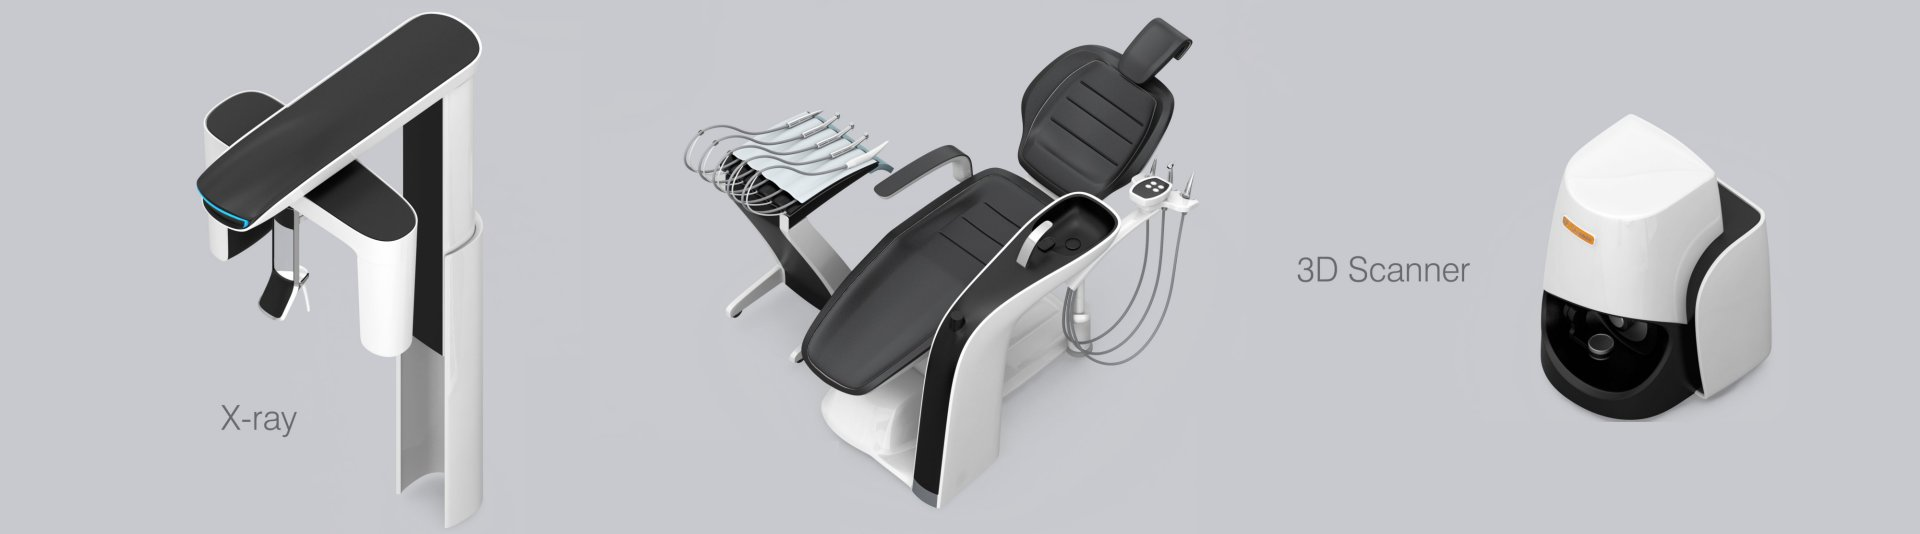 equipement dentiste 94 radio panoramique scanner 3d